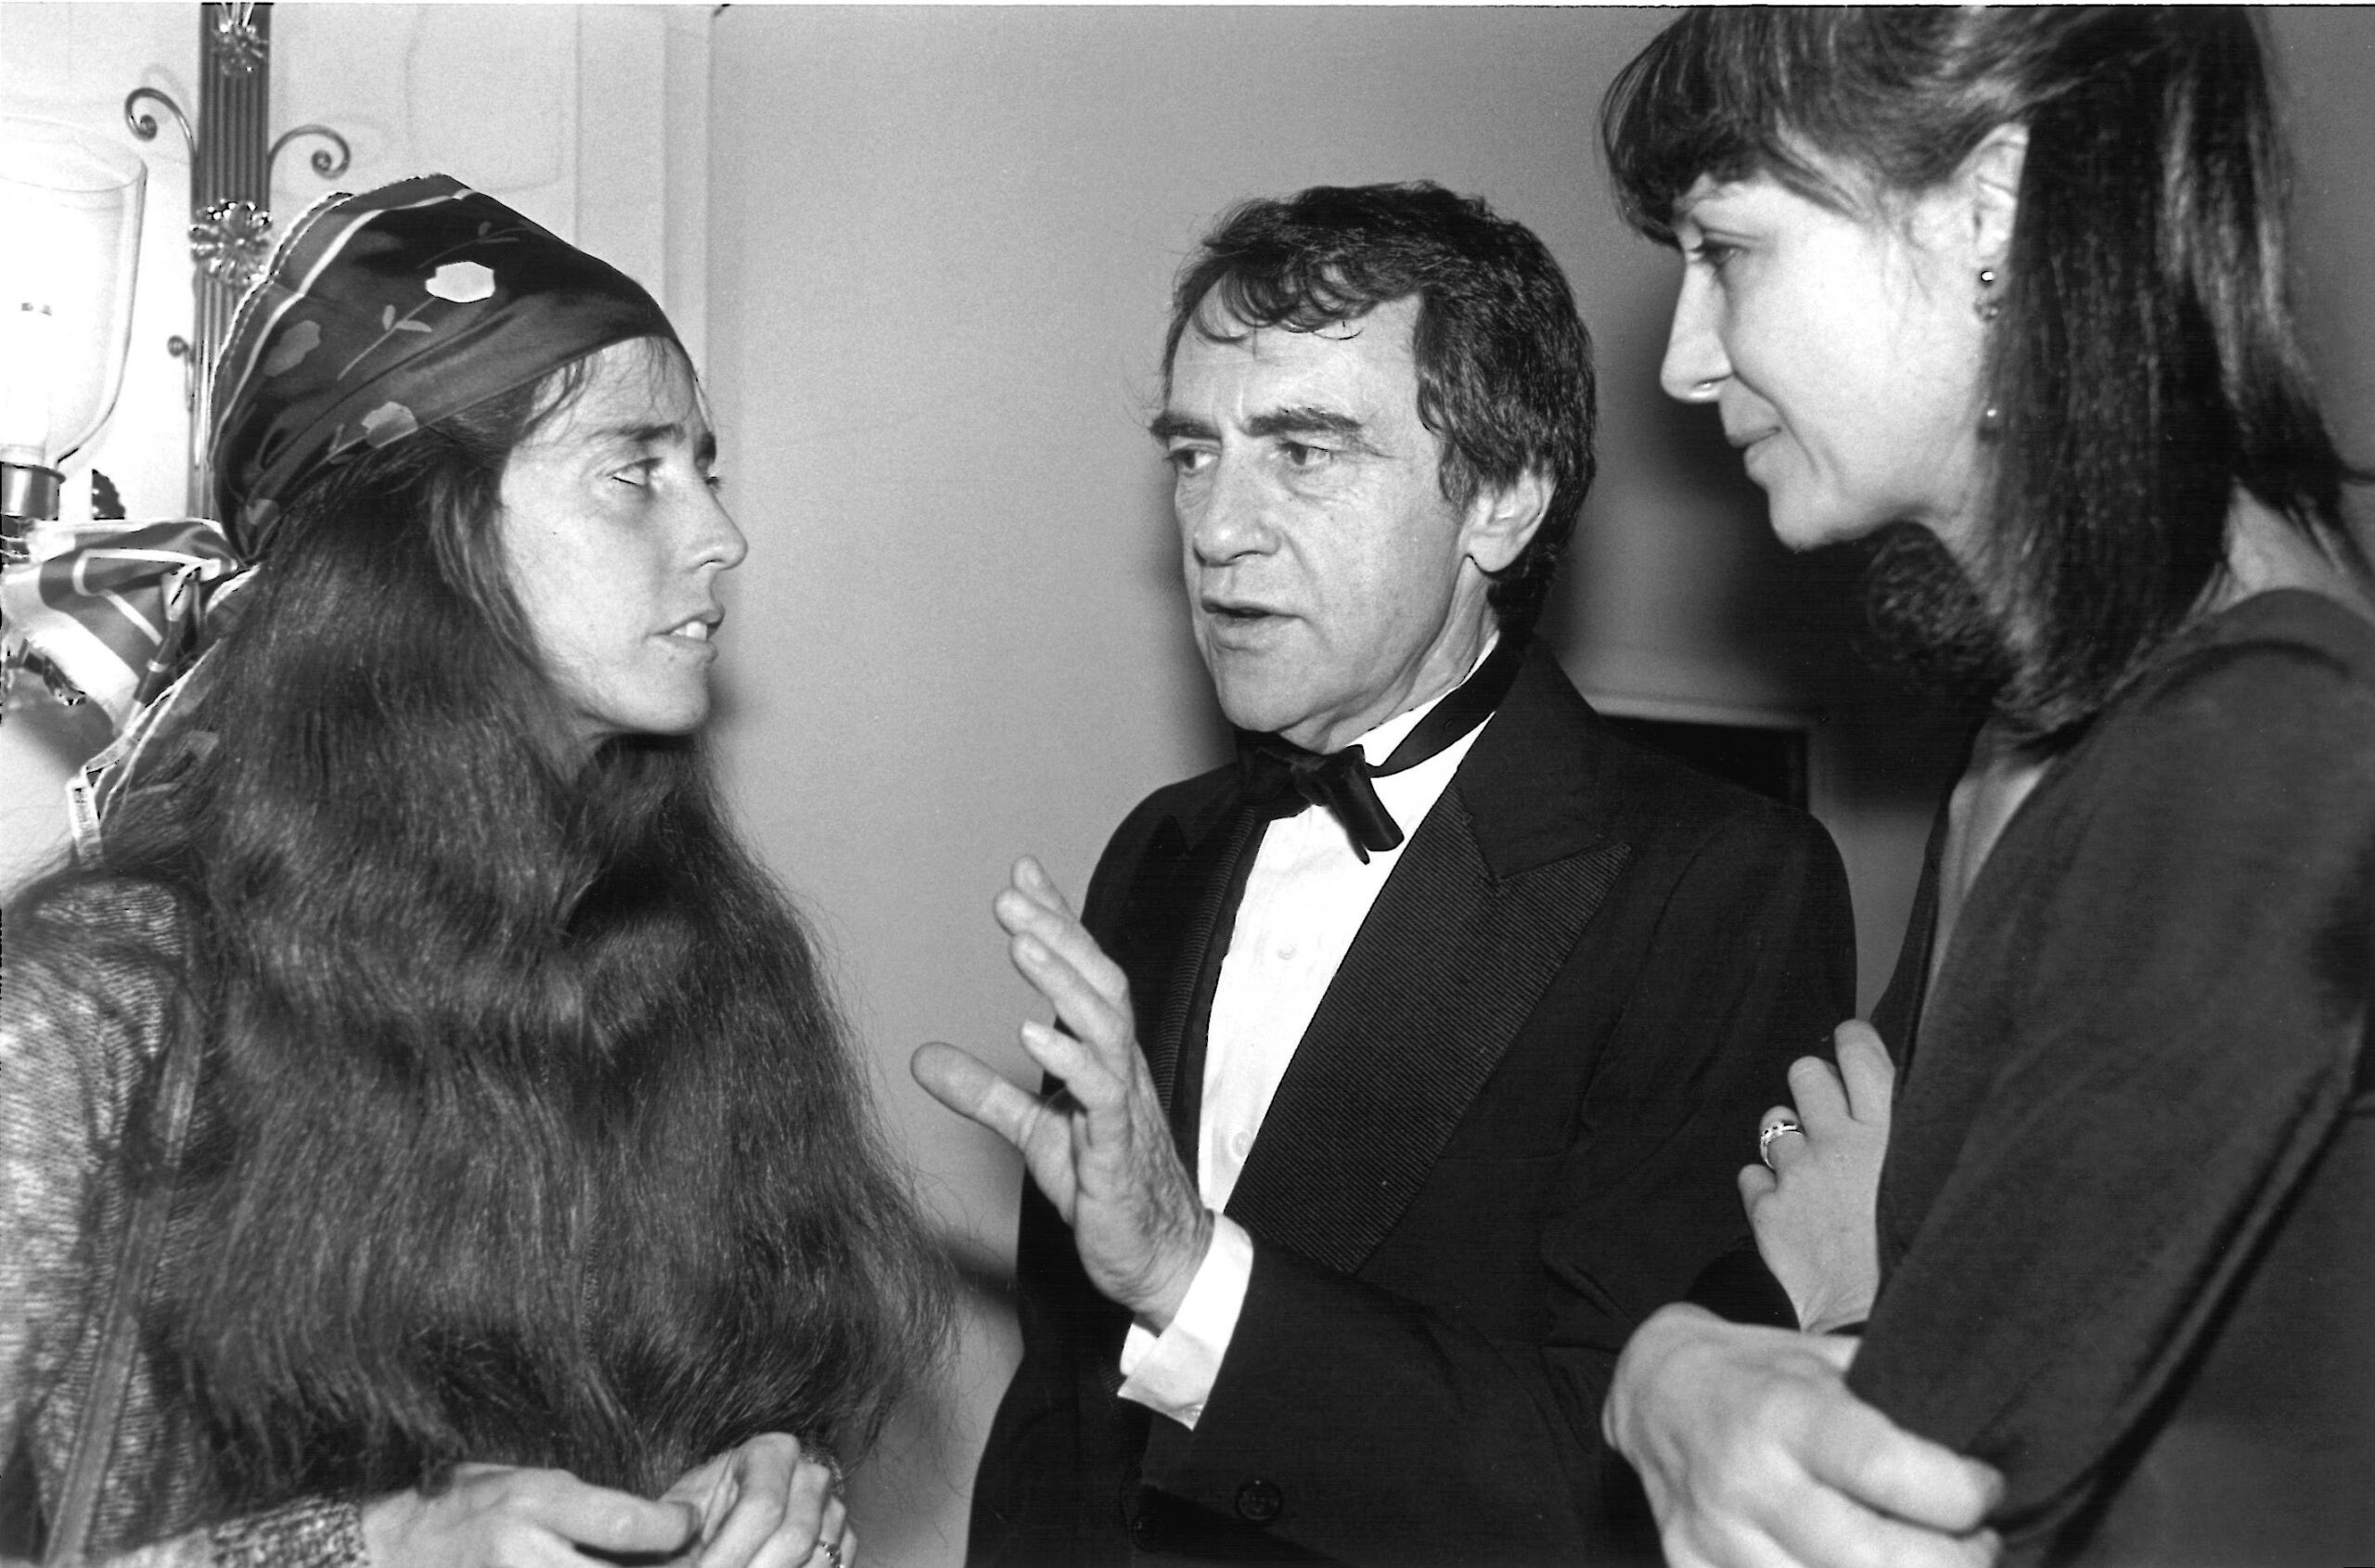 Composer Elizabeth Swados with Joe and Gail, 1978. (Photo: Public Theater)